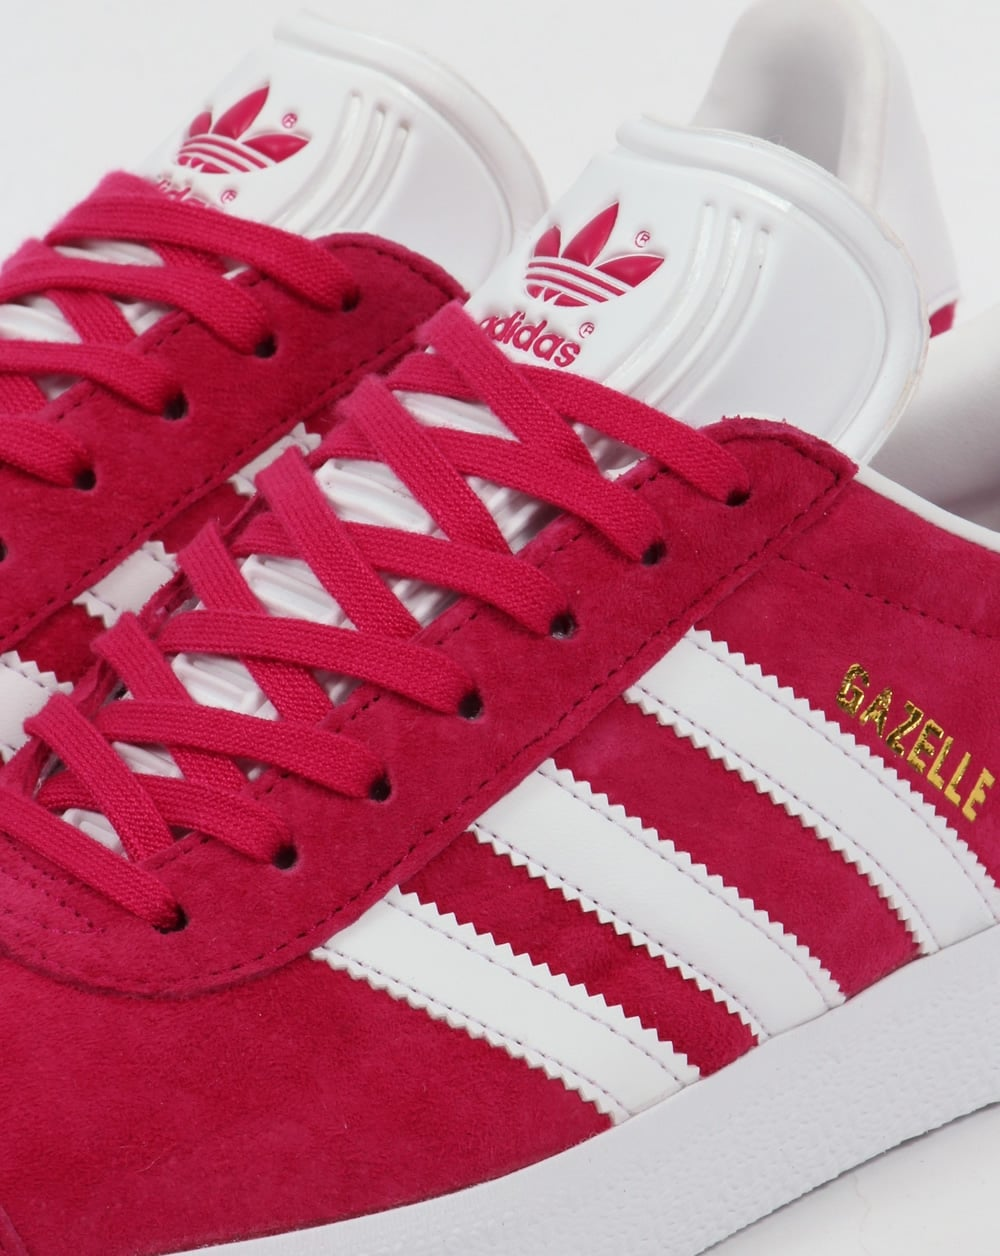 a17686d6fea7 adidas gazelle 2 red suede light pink adidas shoes Equipped.org Blog